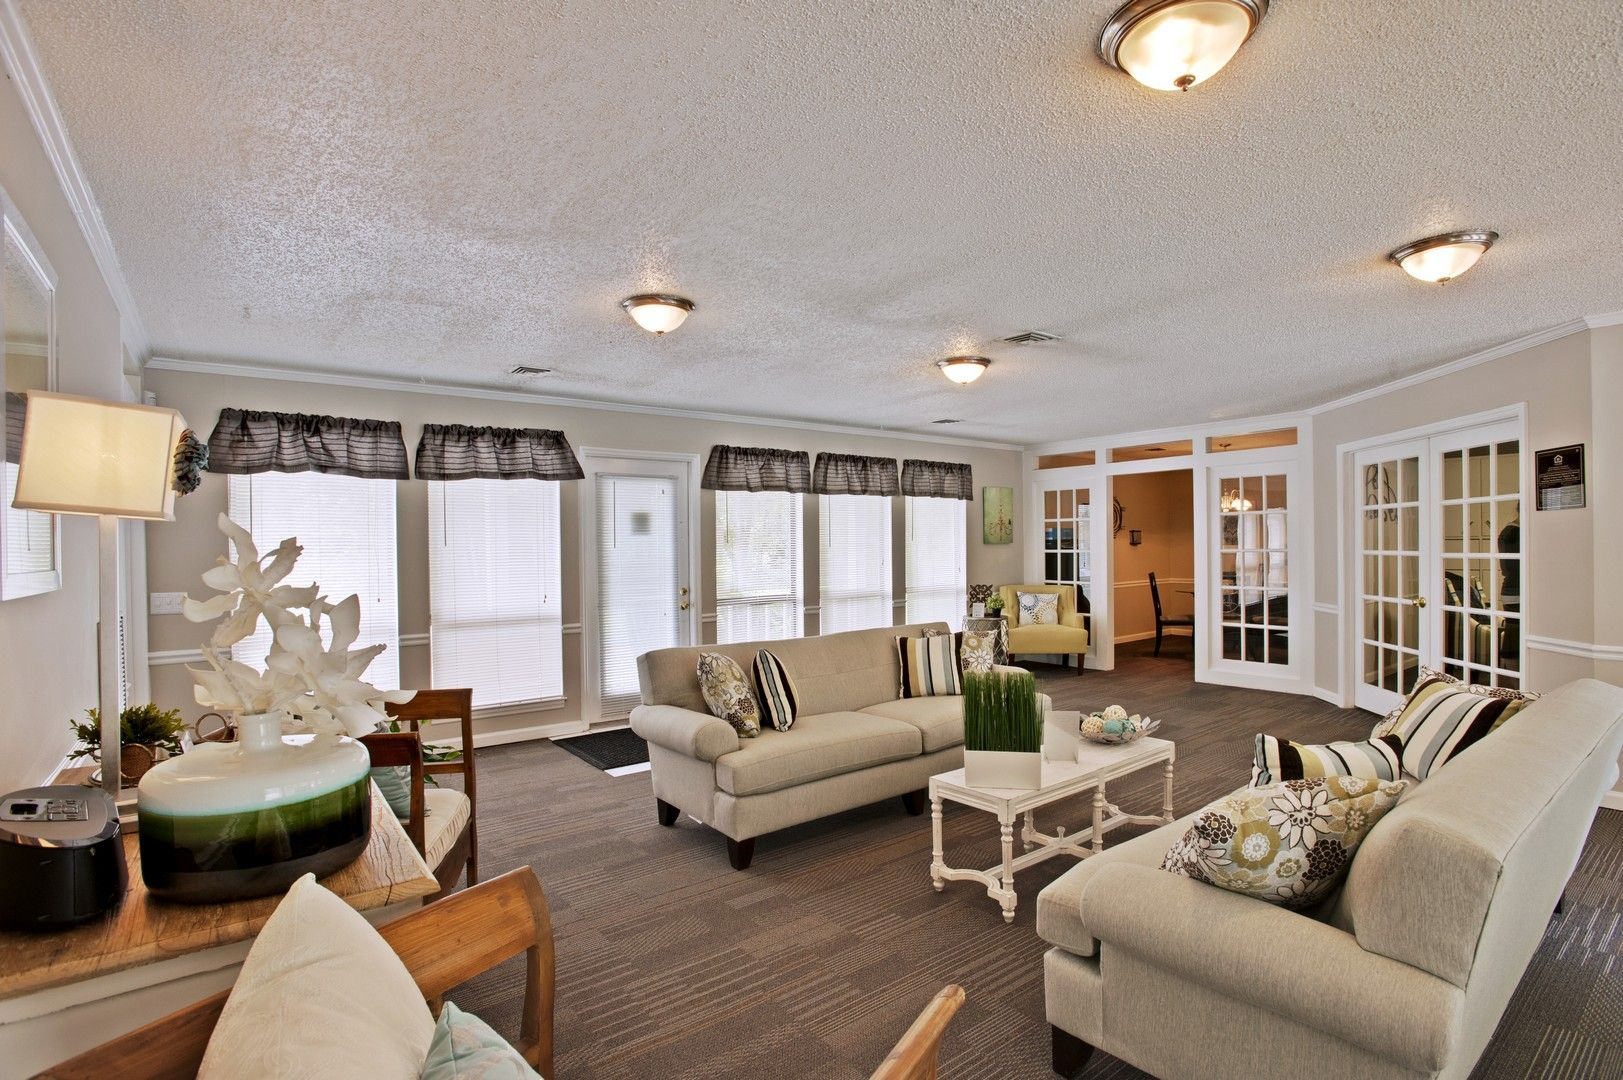 Welcome Home To Heritage Place Apartment Homes Located In Franklin Tennessee Your Newly Renovated Pet Friendly Co White Appliances Private Patio Wall Closet